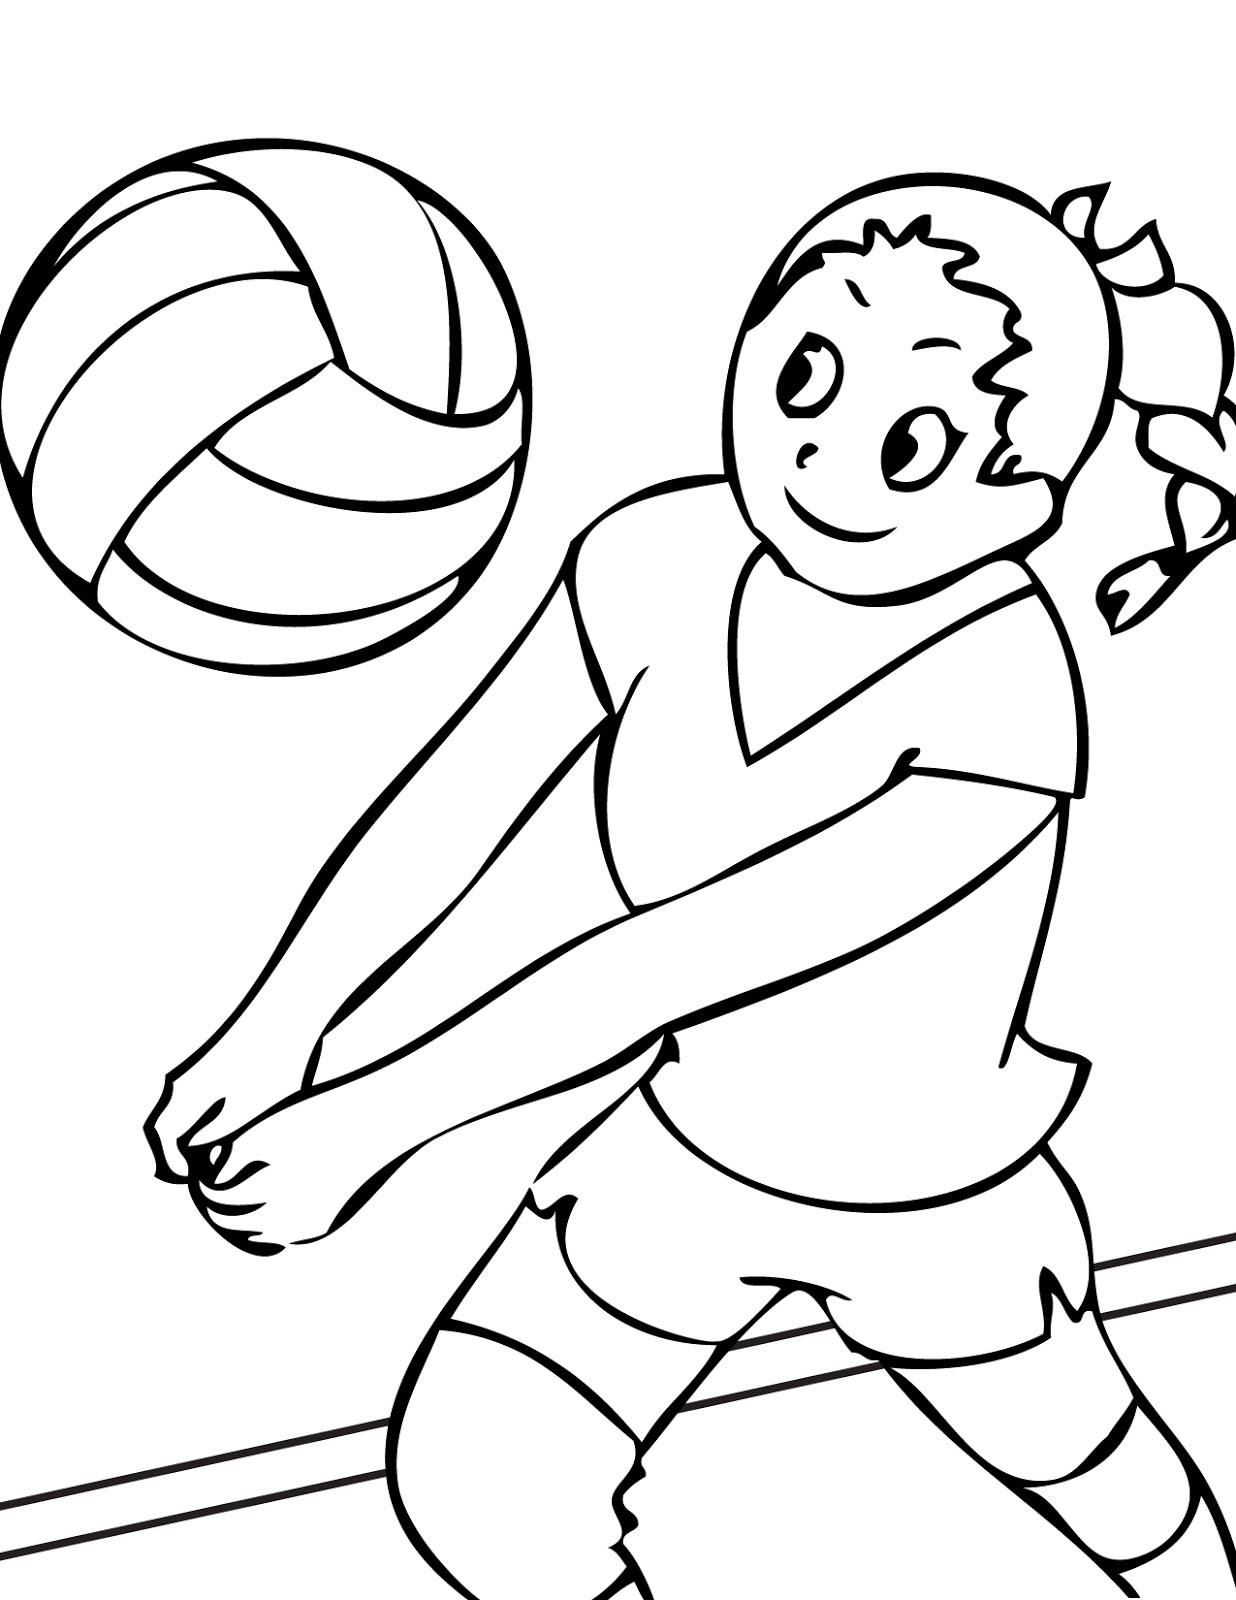 sports colouring sheets free printable sports coloring pages for kids colouring sheets sports